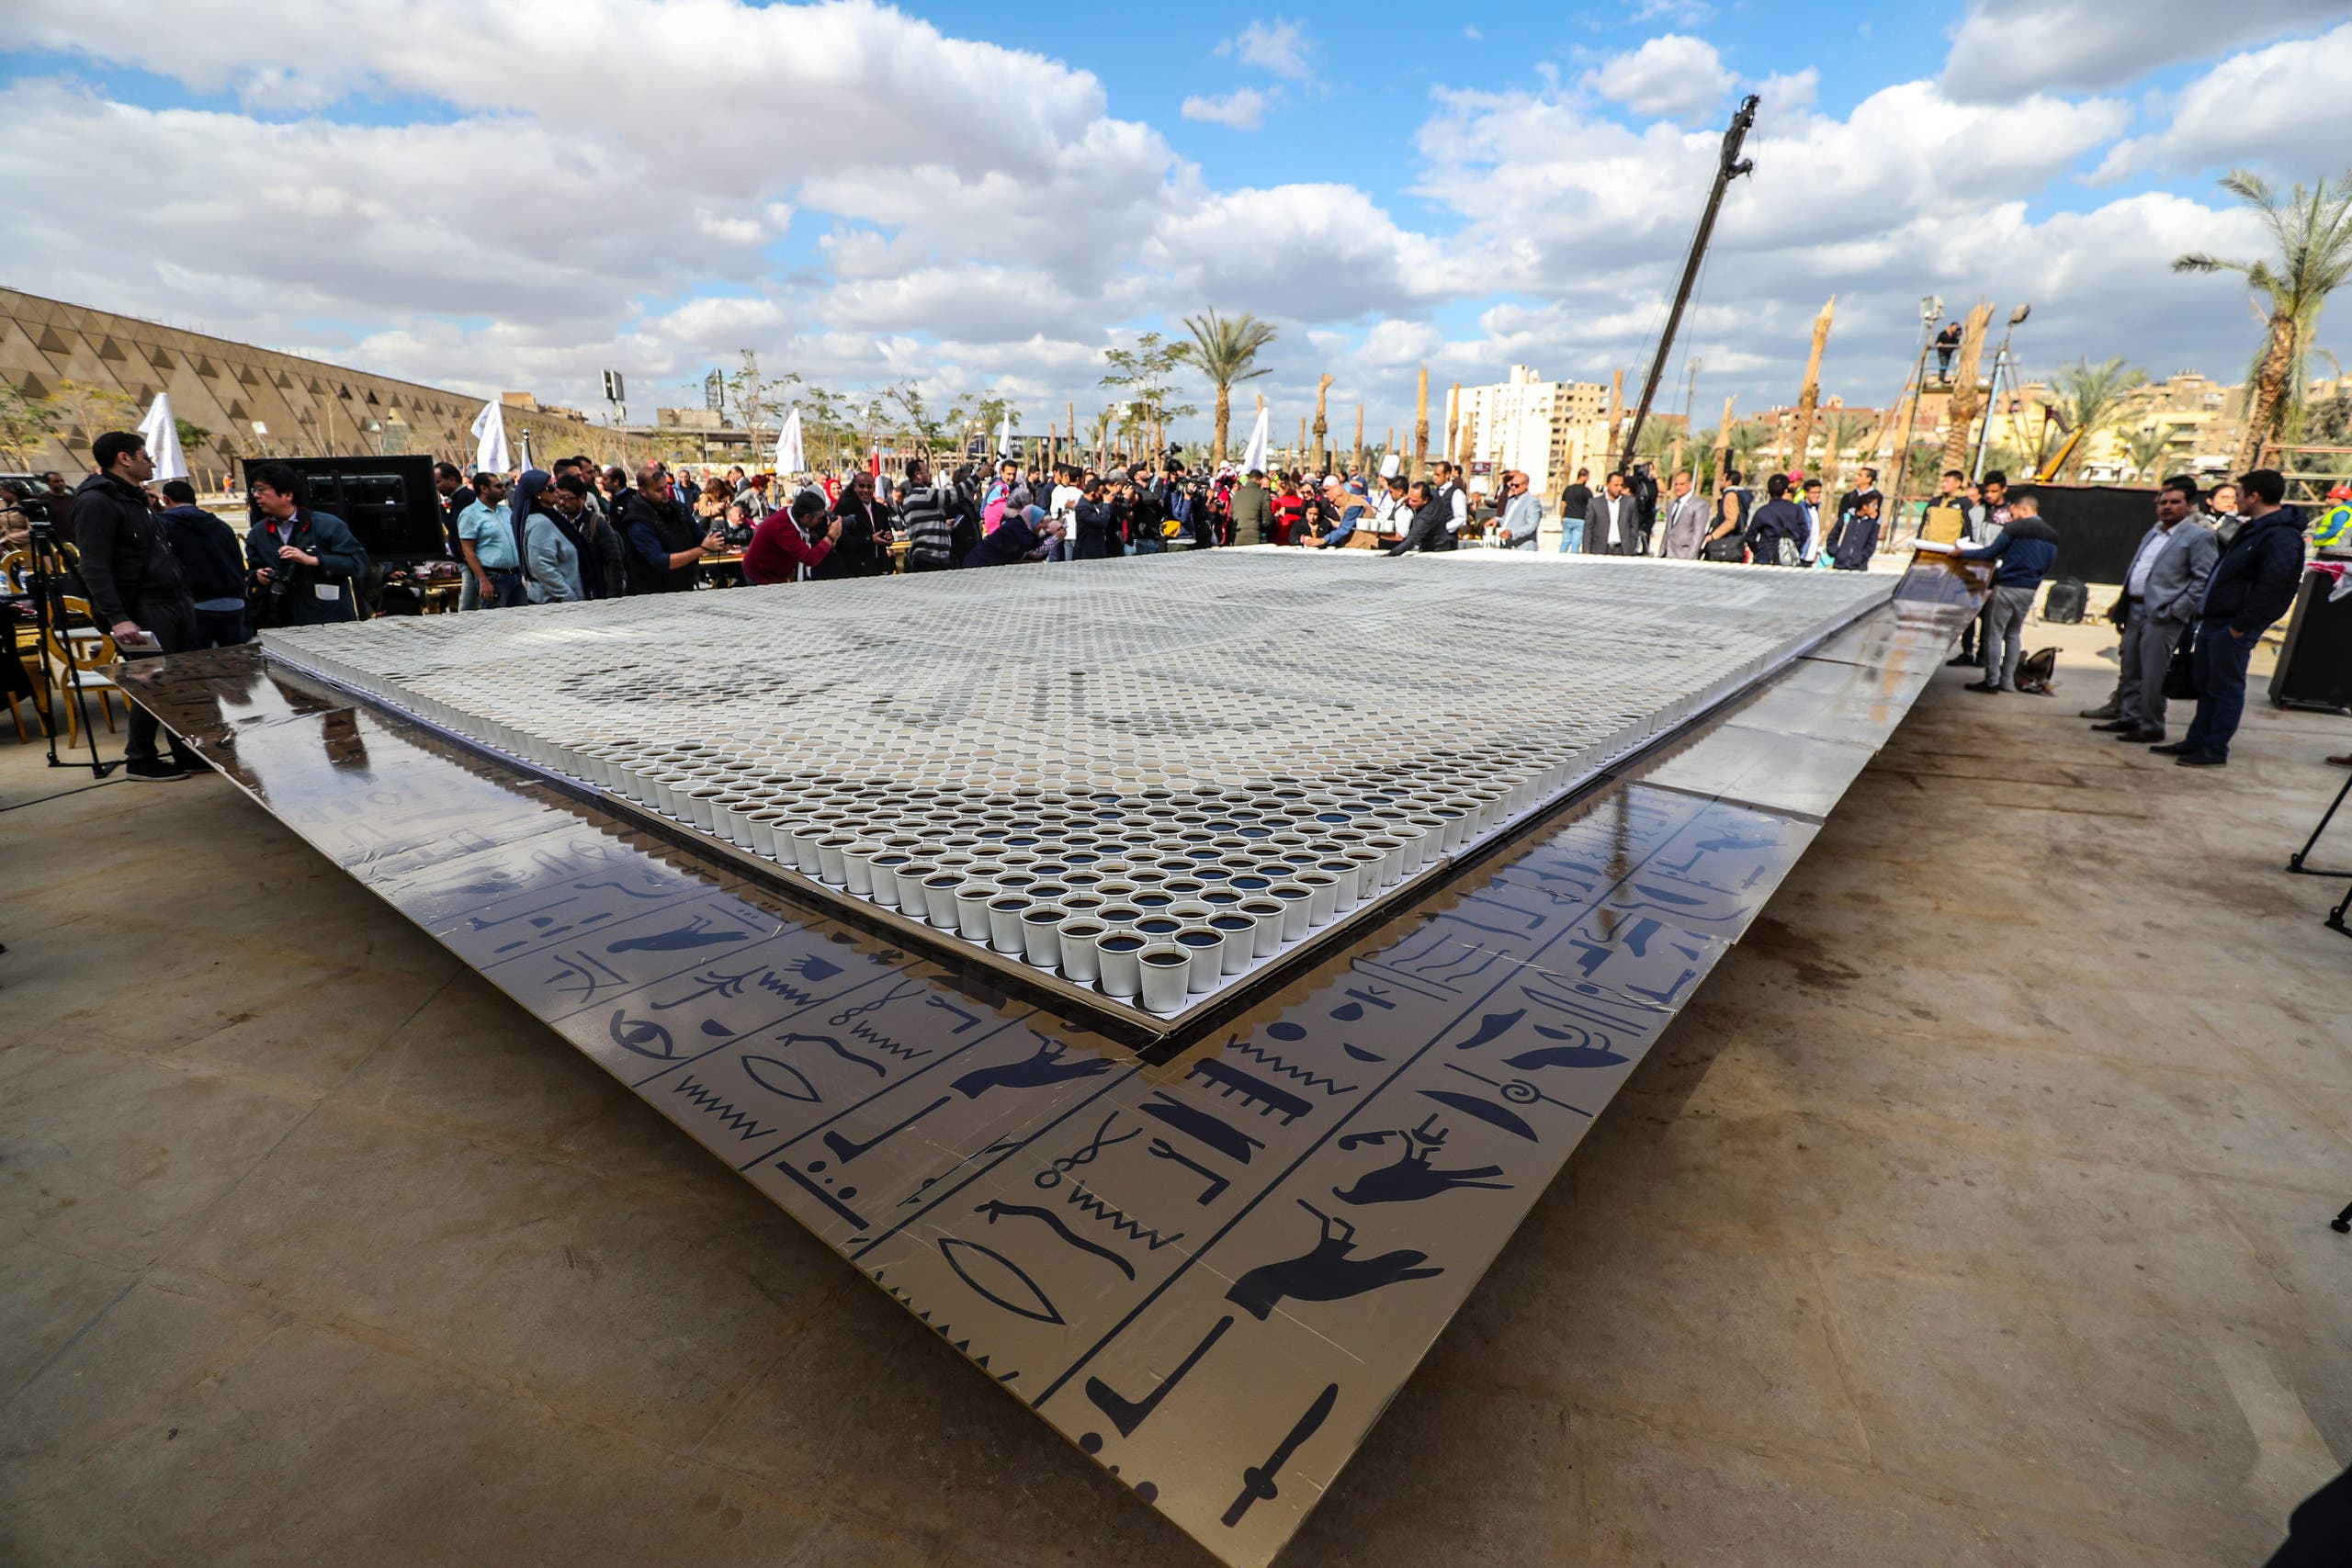 Guiness World record, Egypt at the Grand Egyptian Museum. (Photo: AFP)